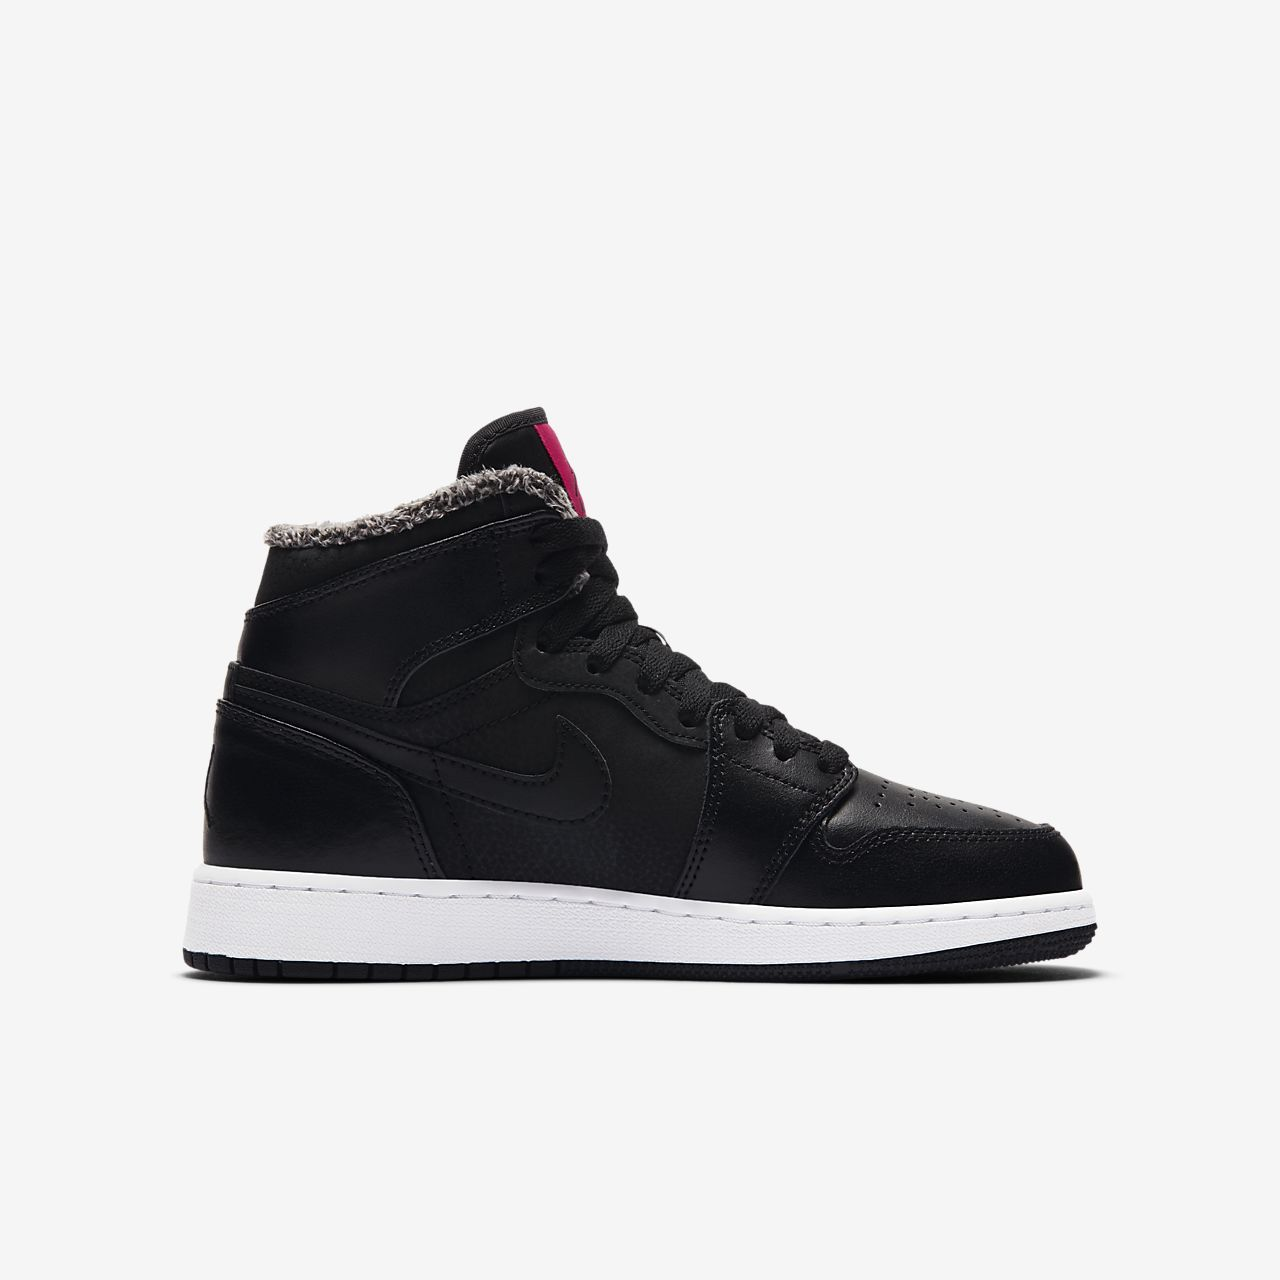 nike air jordan retro 1 kids nz